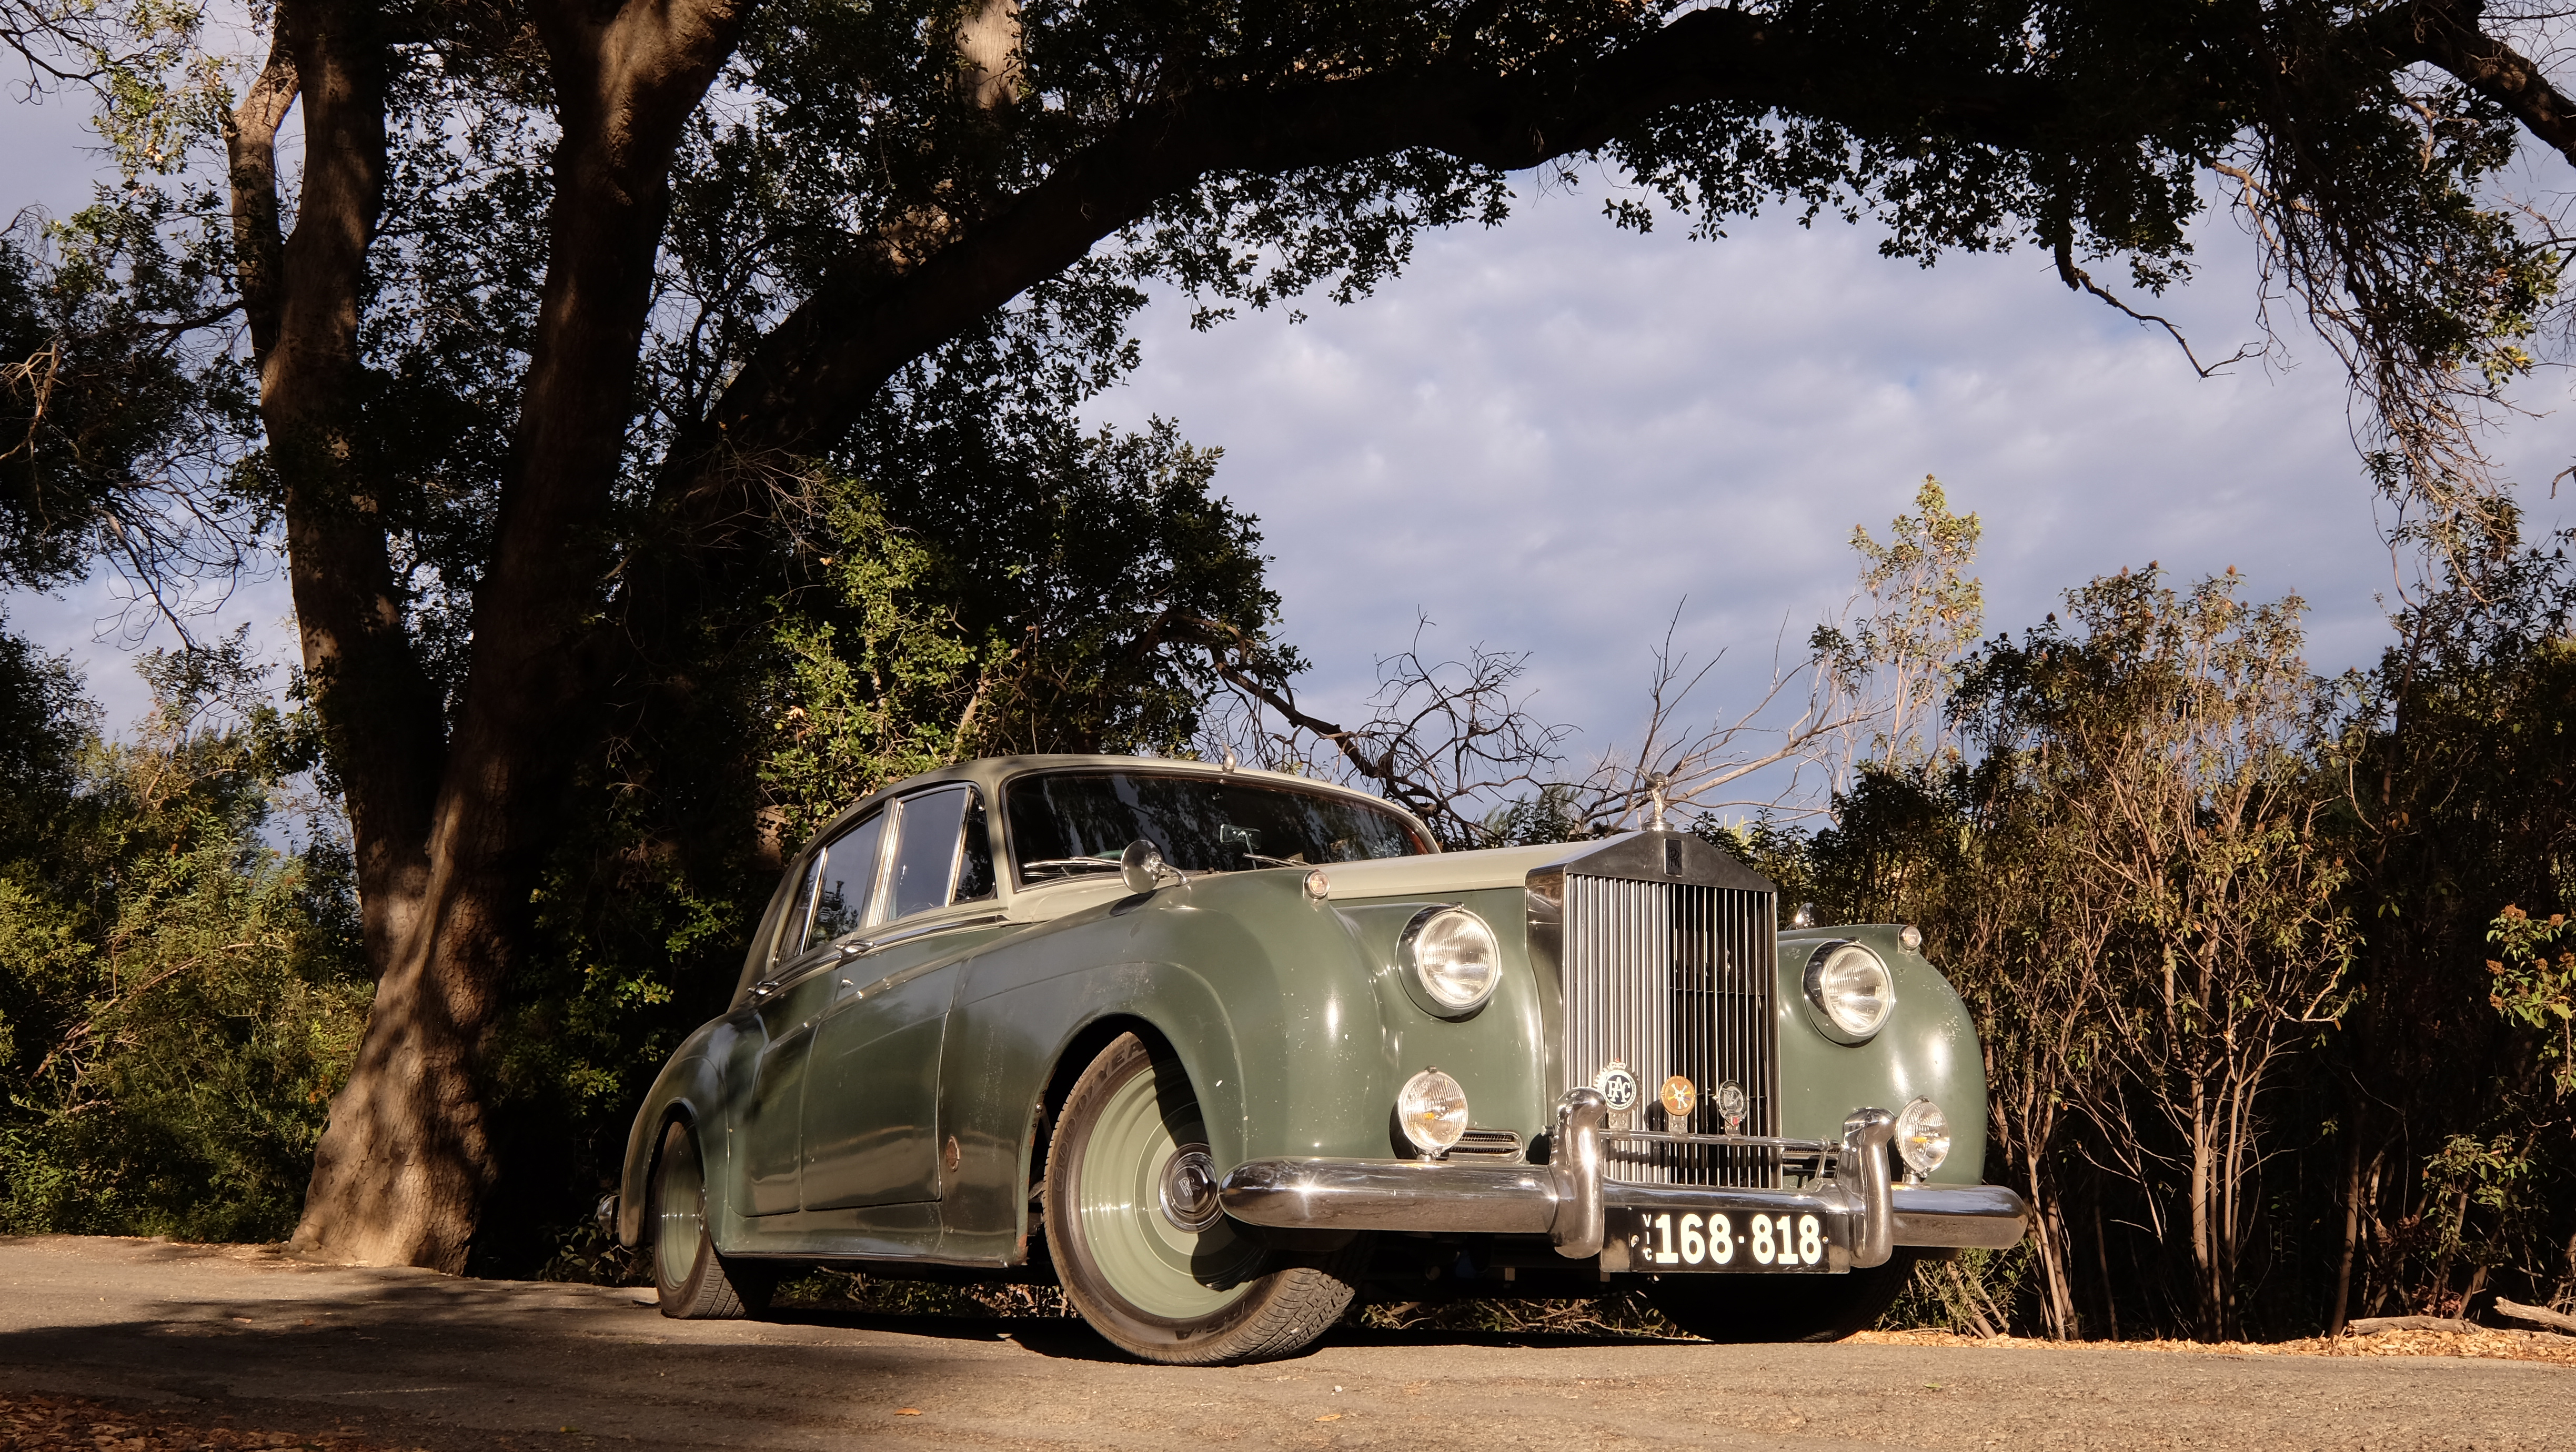 Apart from the FJs and Broncos, you've also been redesigning Rolls Royces and Ferraris. Have you ever stepped on some purist's toes?